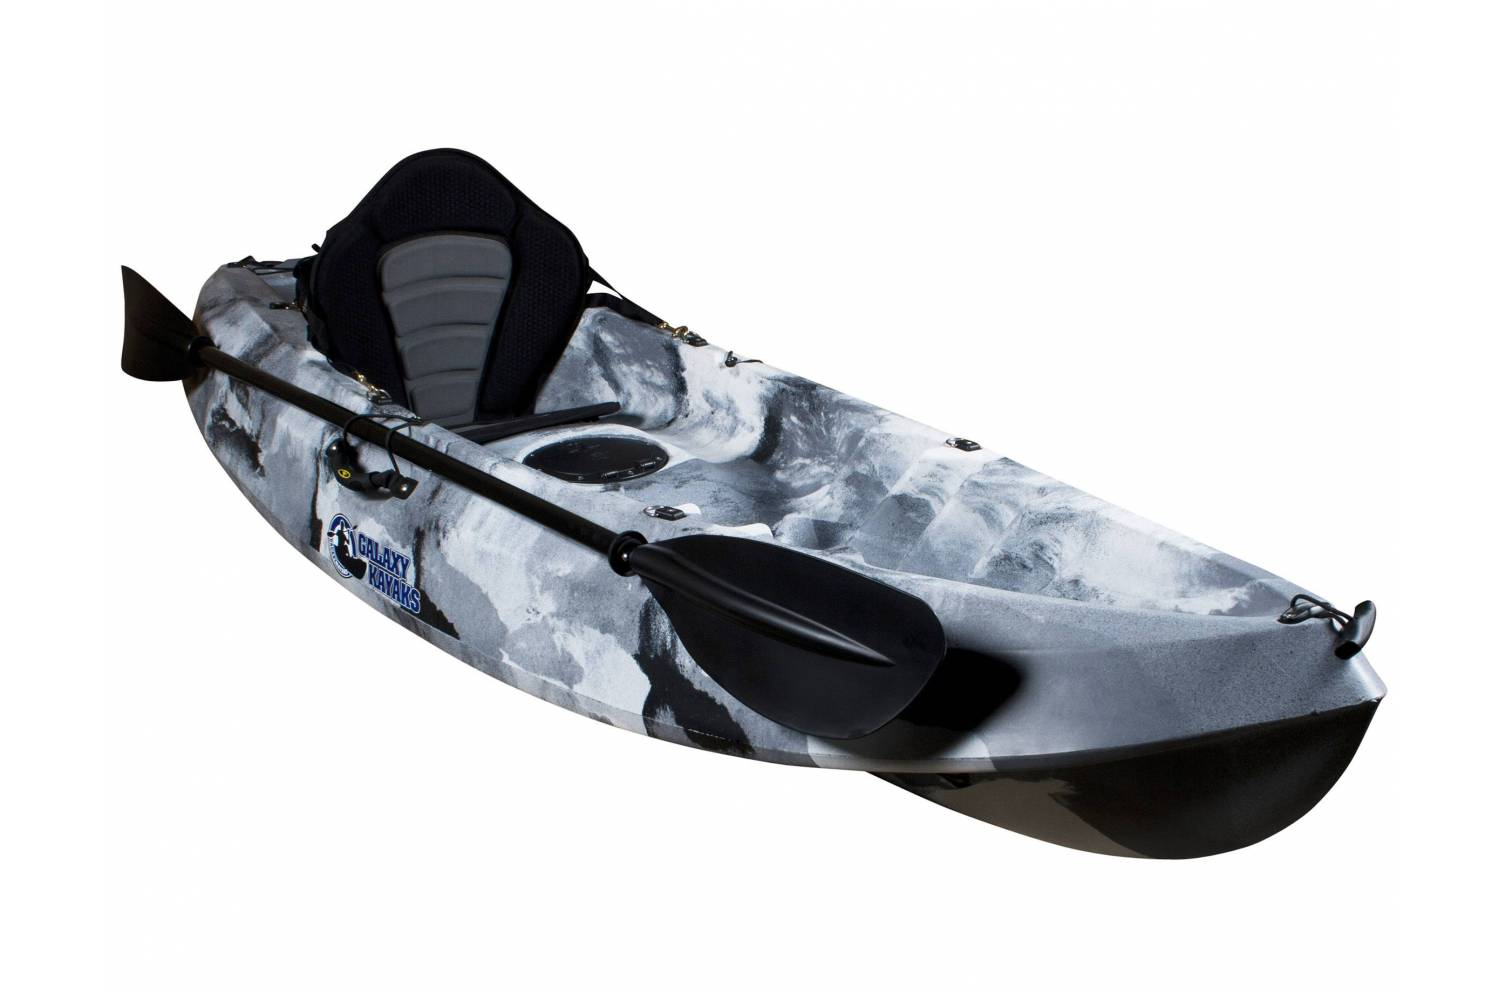 Fuego - Galaxy Kayaks for Leisure